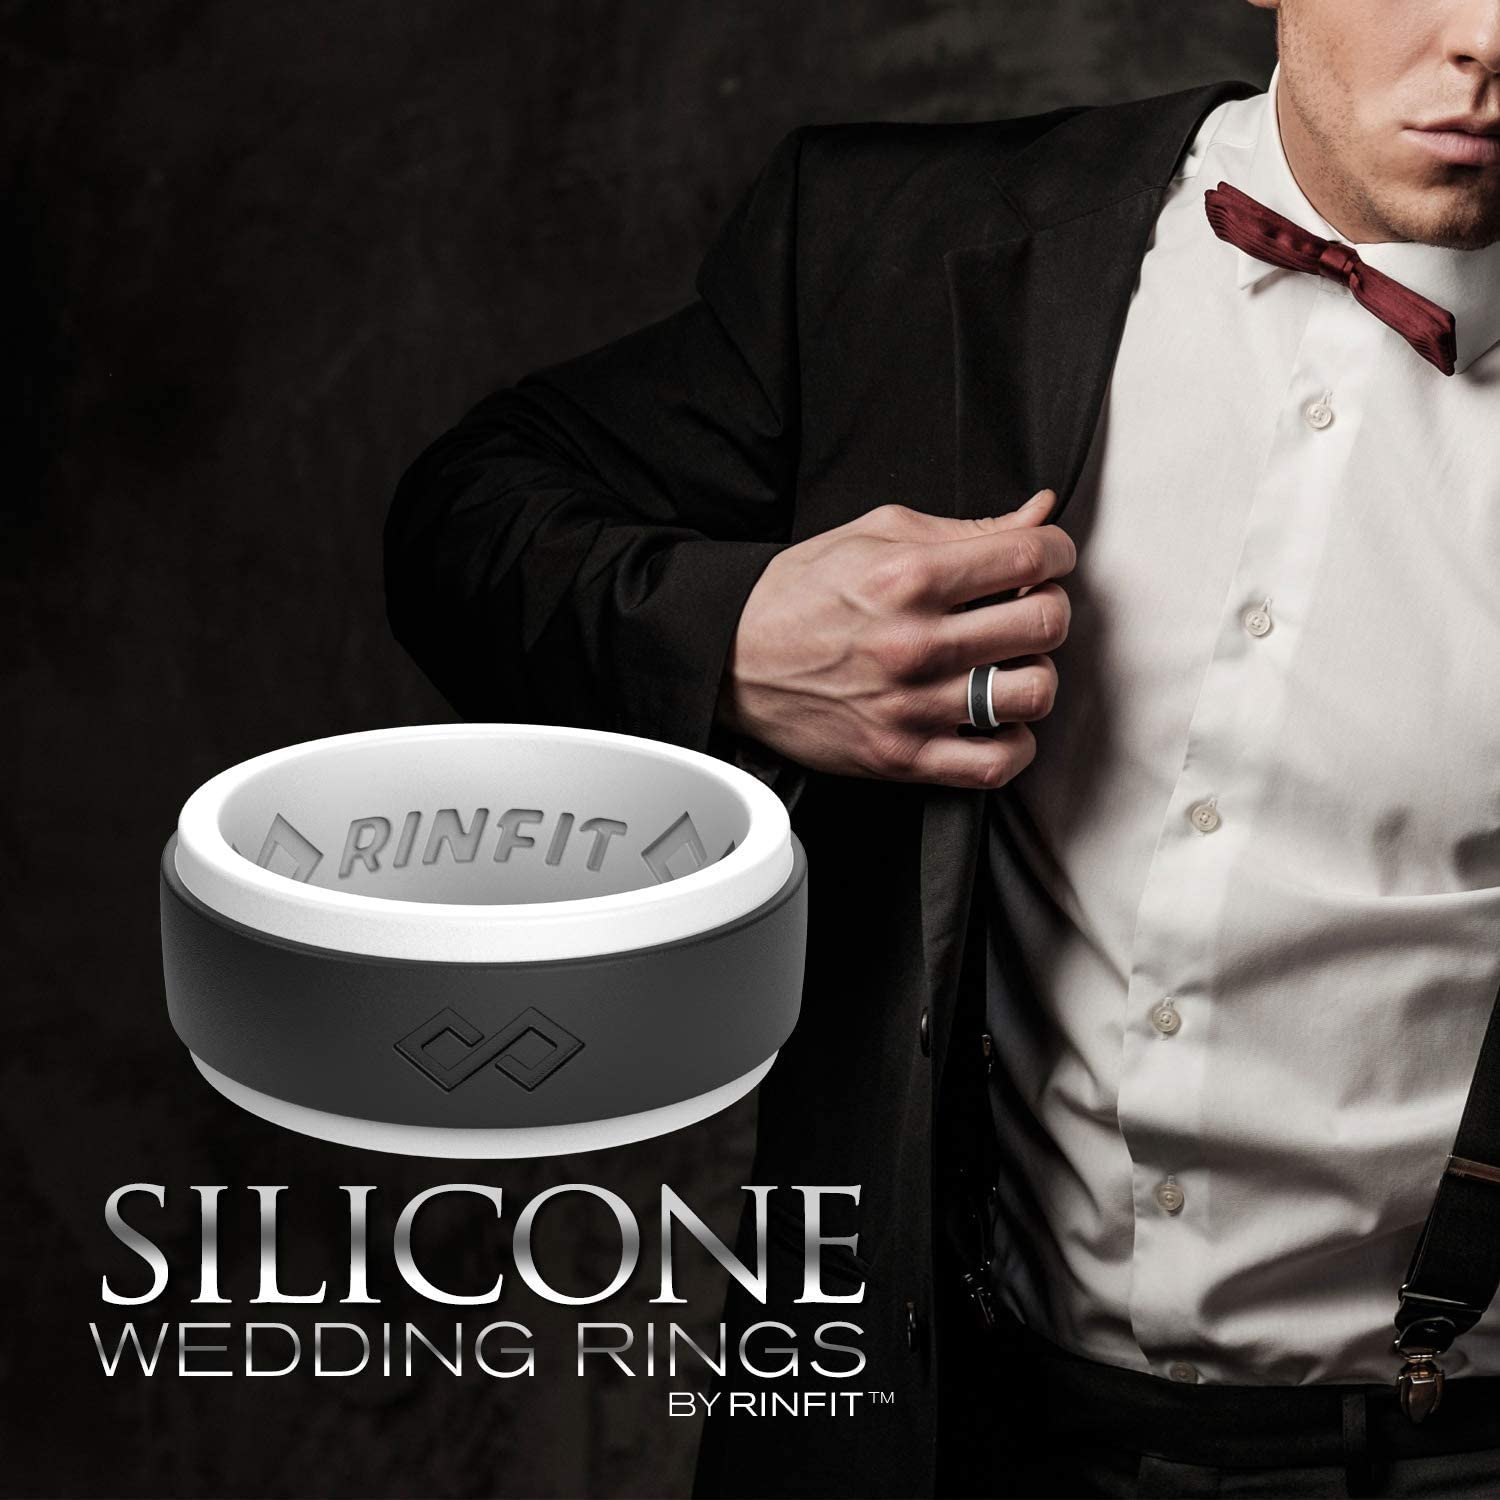 Rinfit Silicone Wedding Ring for Men, 1/3/4/7 Rings Packs, Step Edge Design Silicon Rubber Mens Wedding Band Sizes 7-14